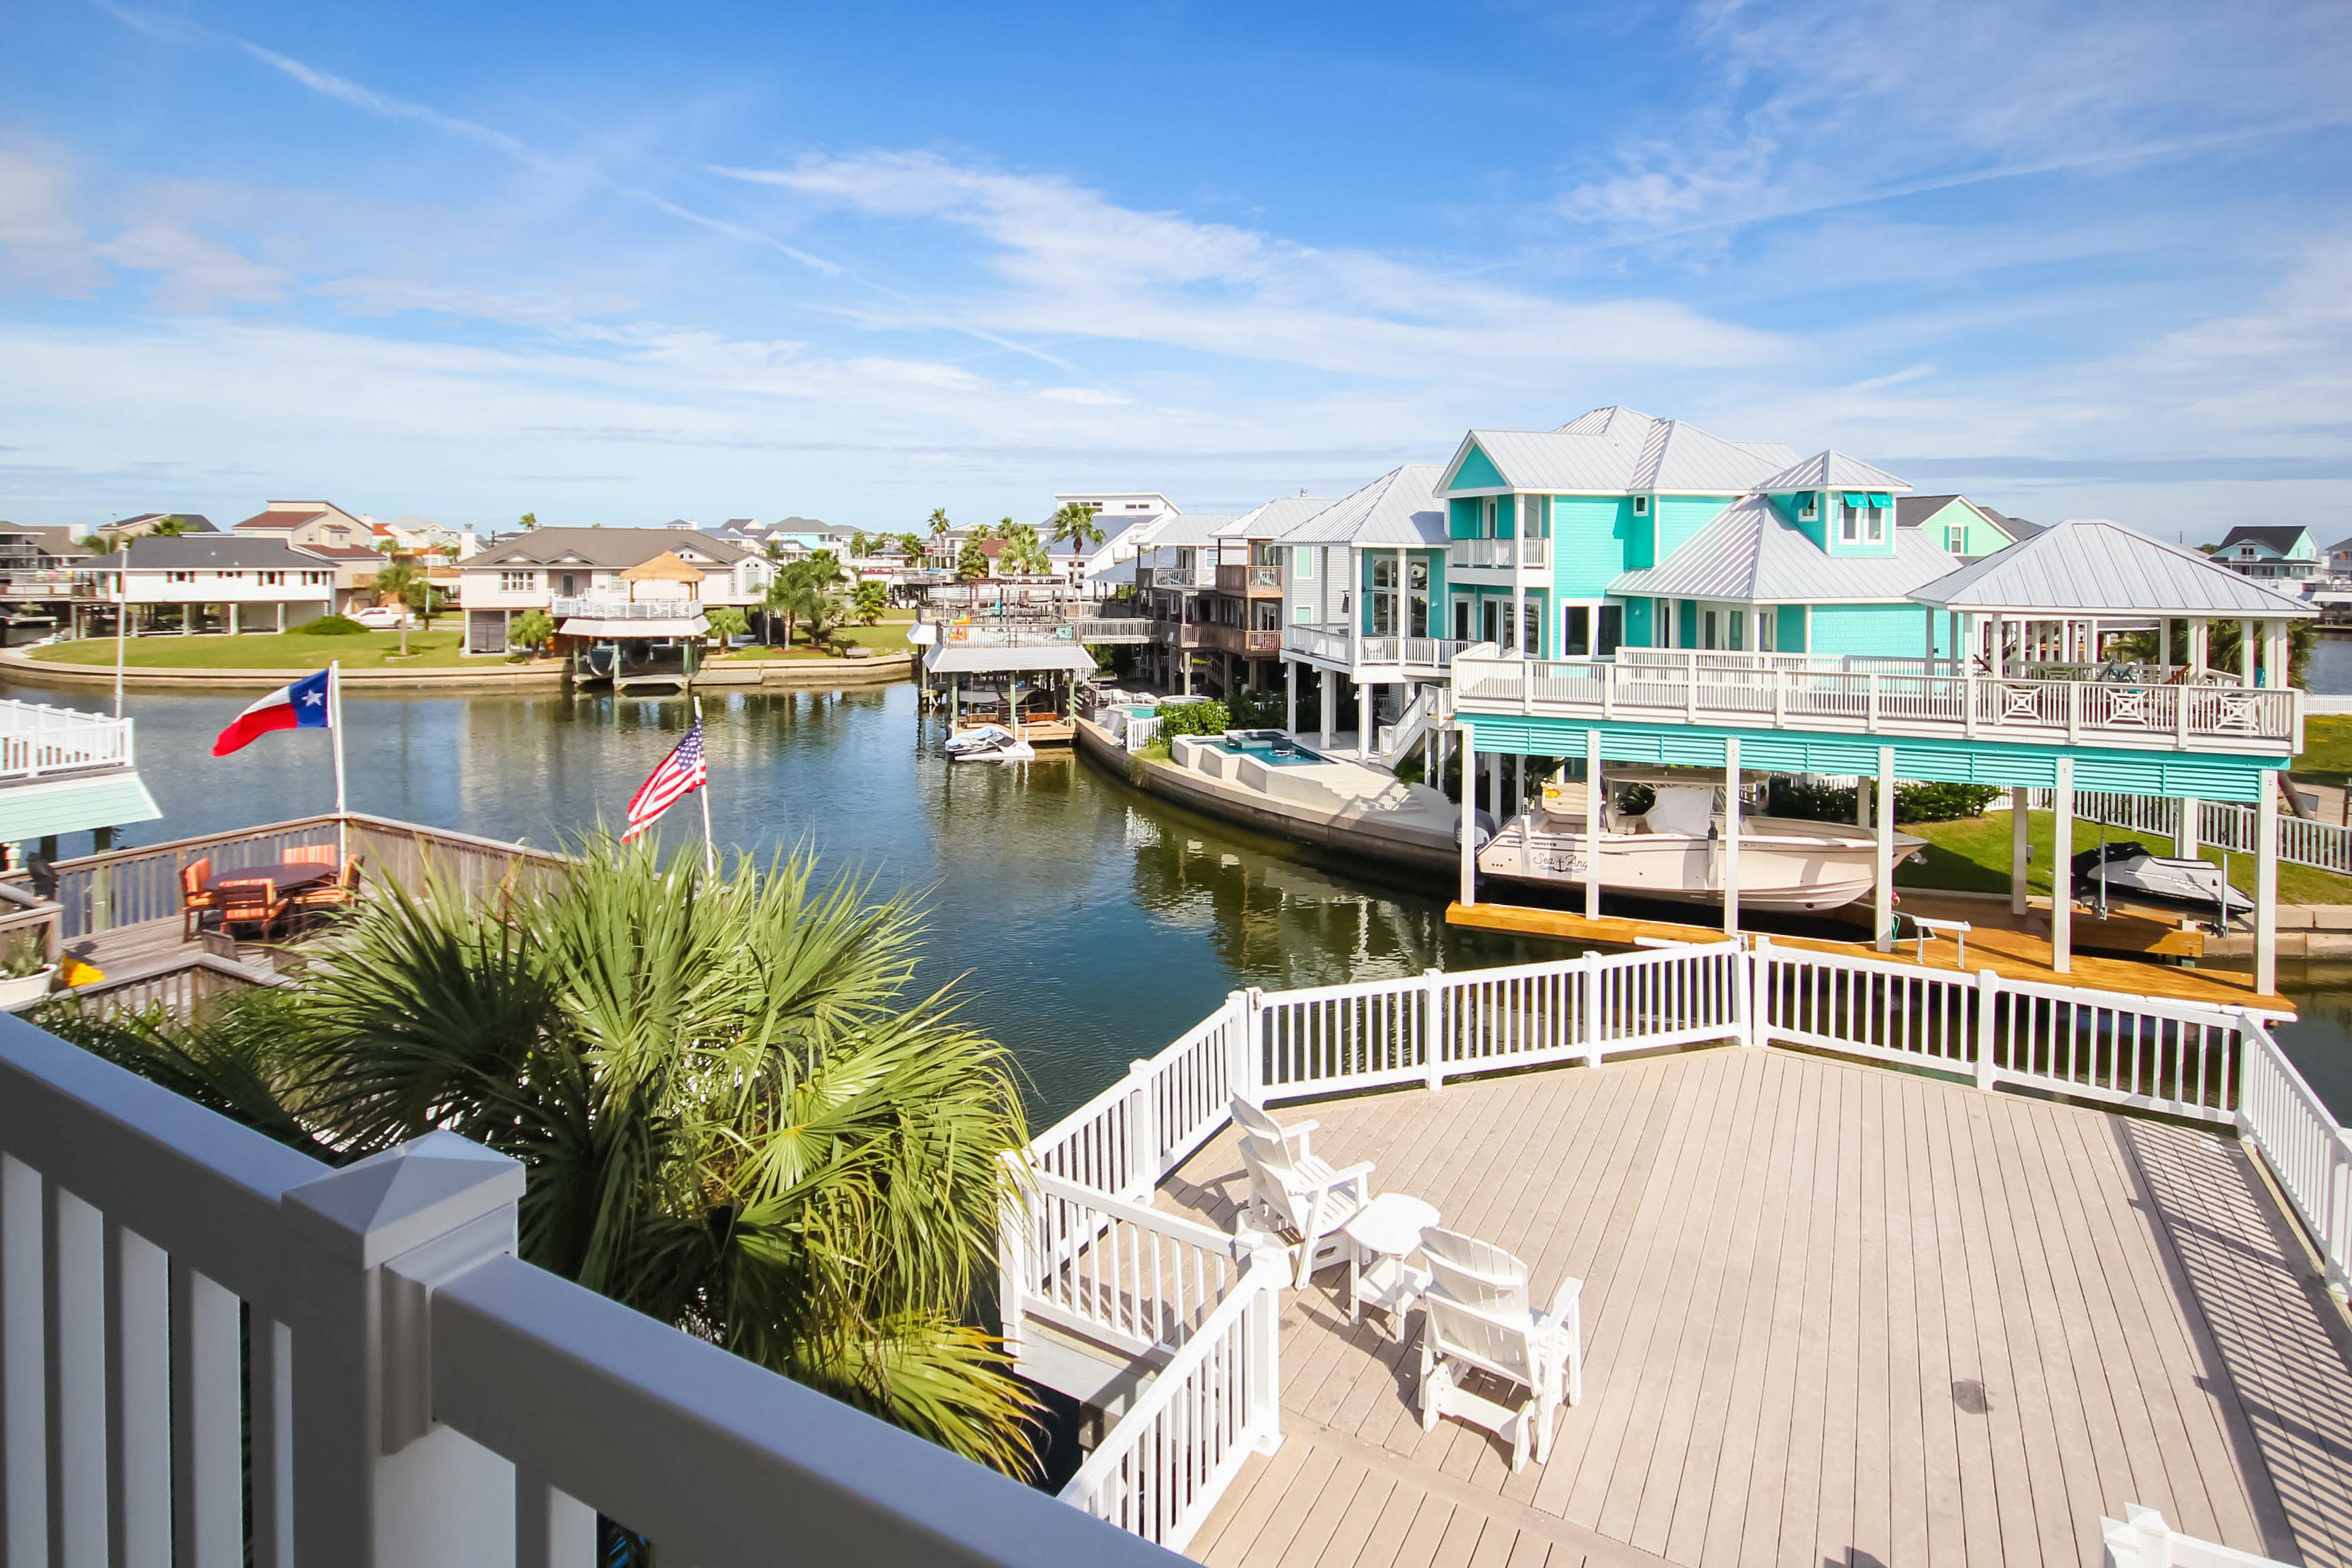 Welcome to Galveston! Your canal-front home is professionally managed by TurnKey Vacation Rentals.